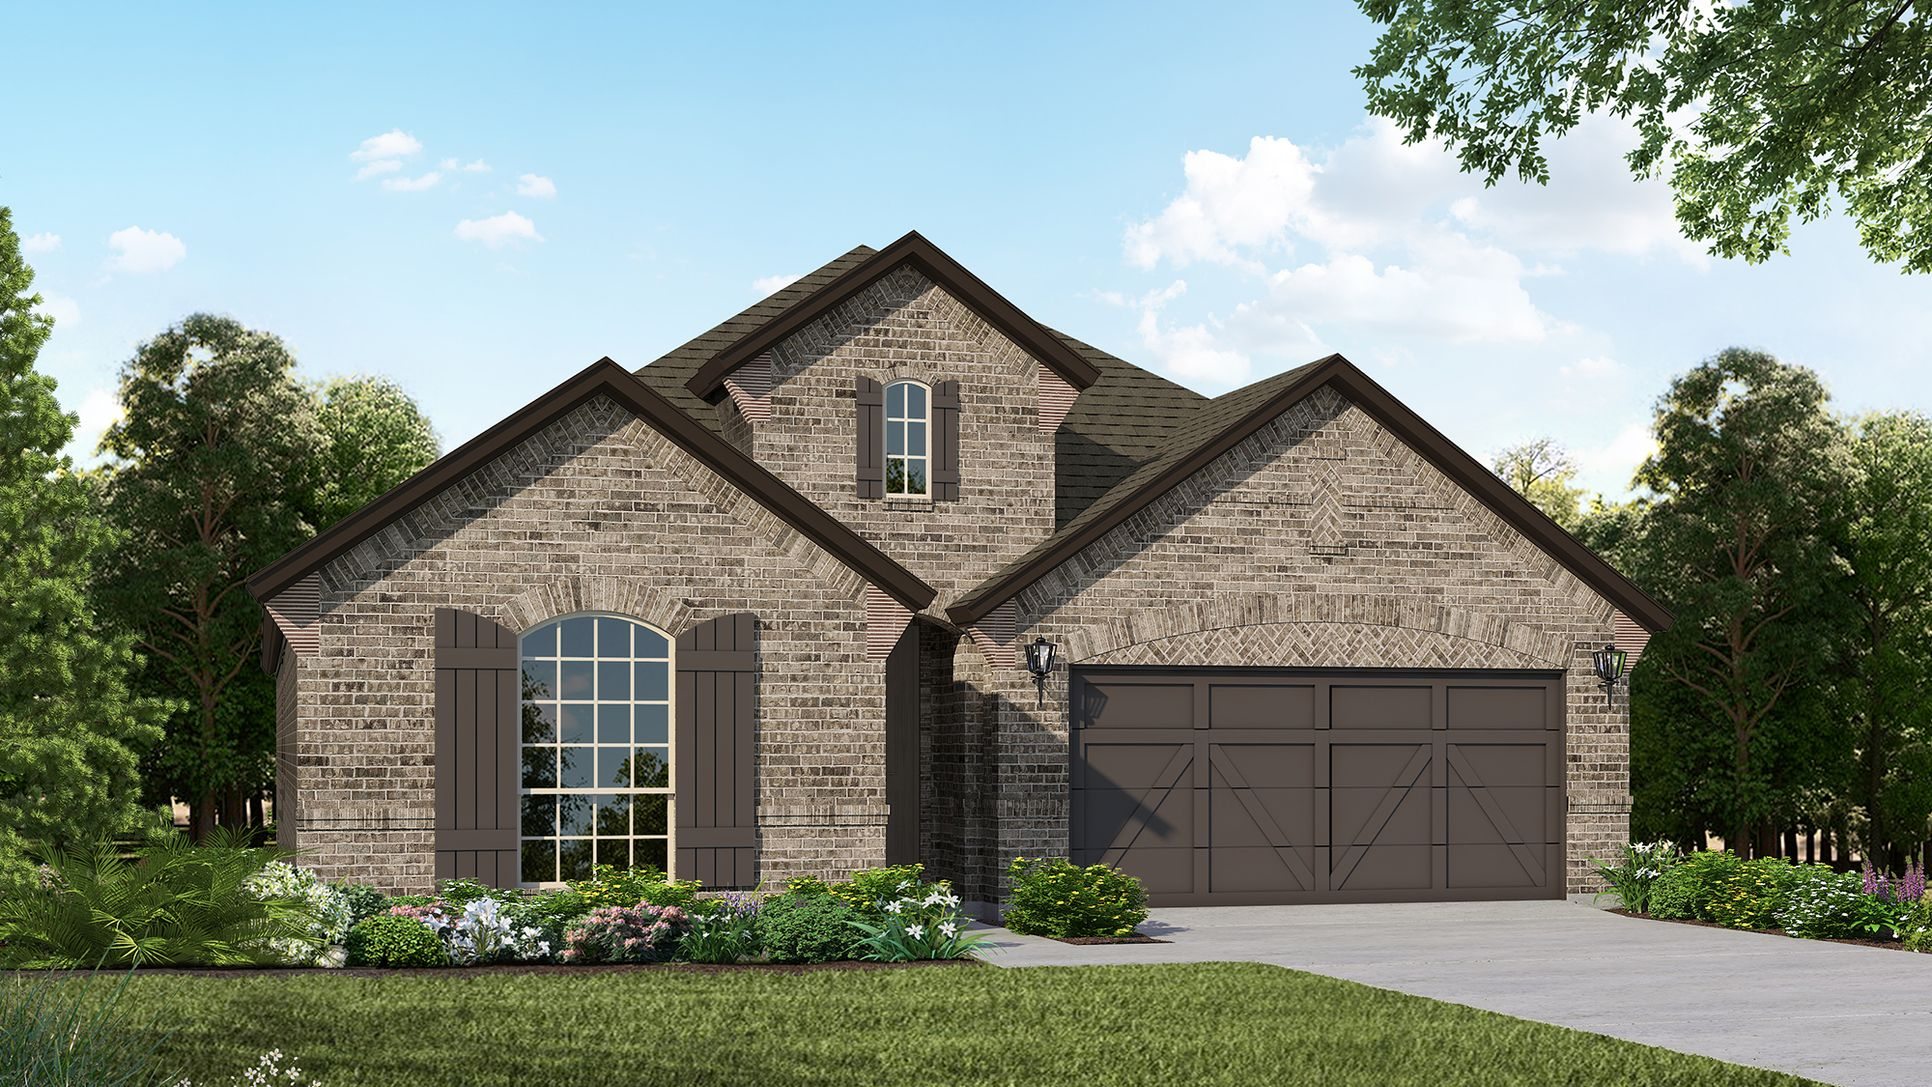 Exterior:1216 Long meadow Elevation B